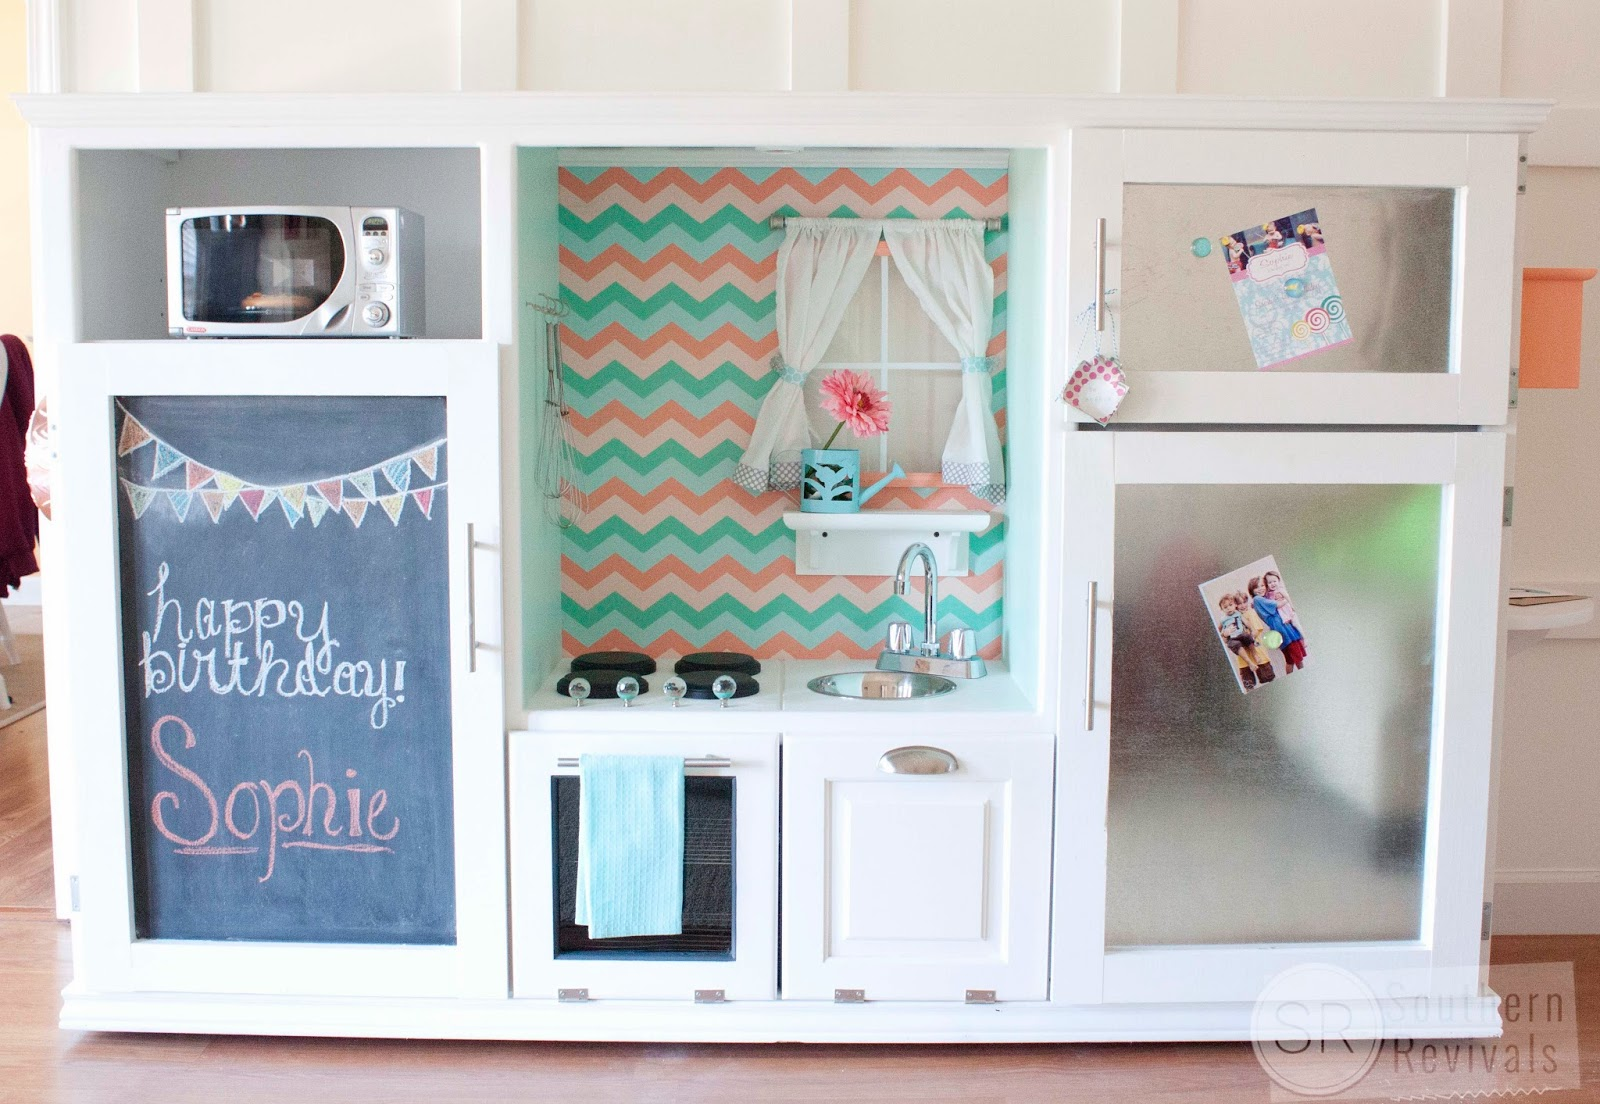 24 DIY Play Kitchen Ideas Making Miniature Pretties that Look Realistic!